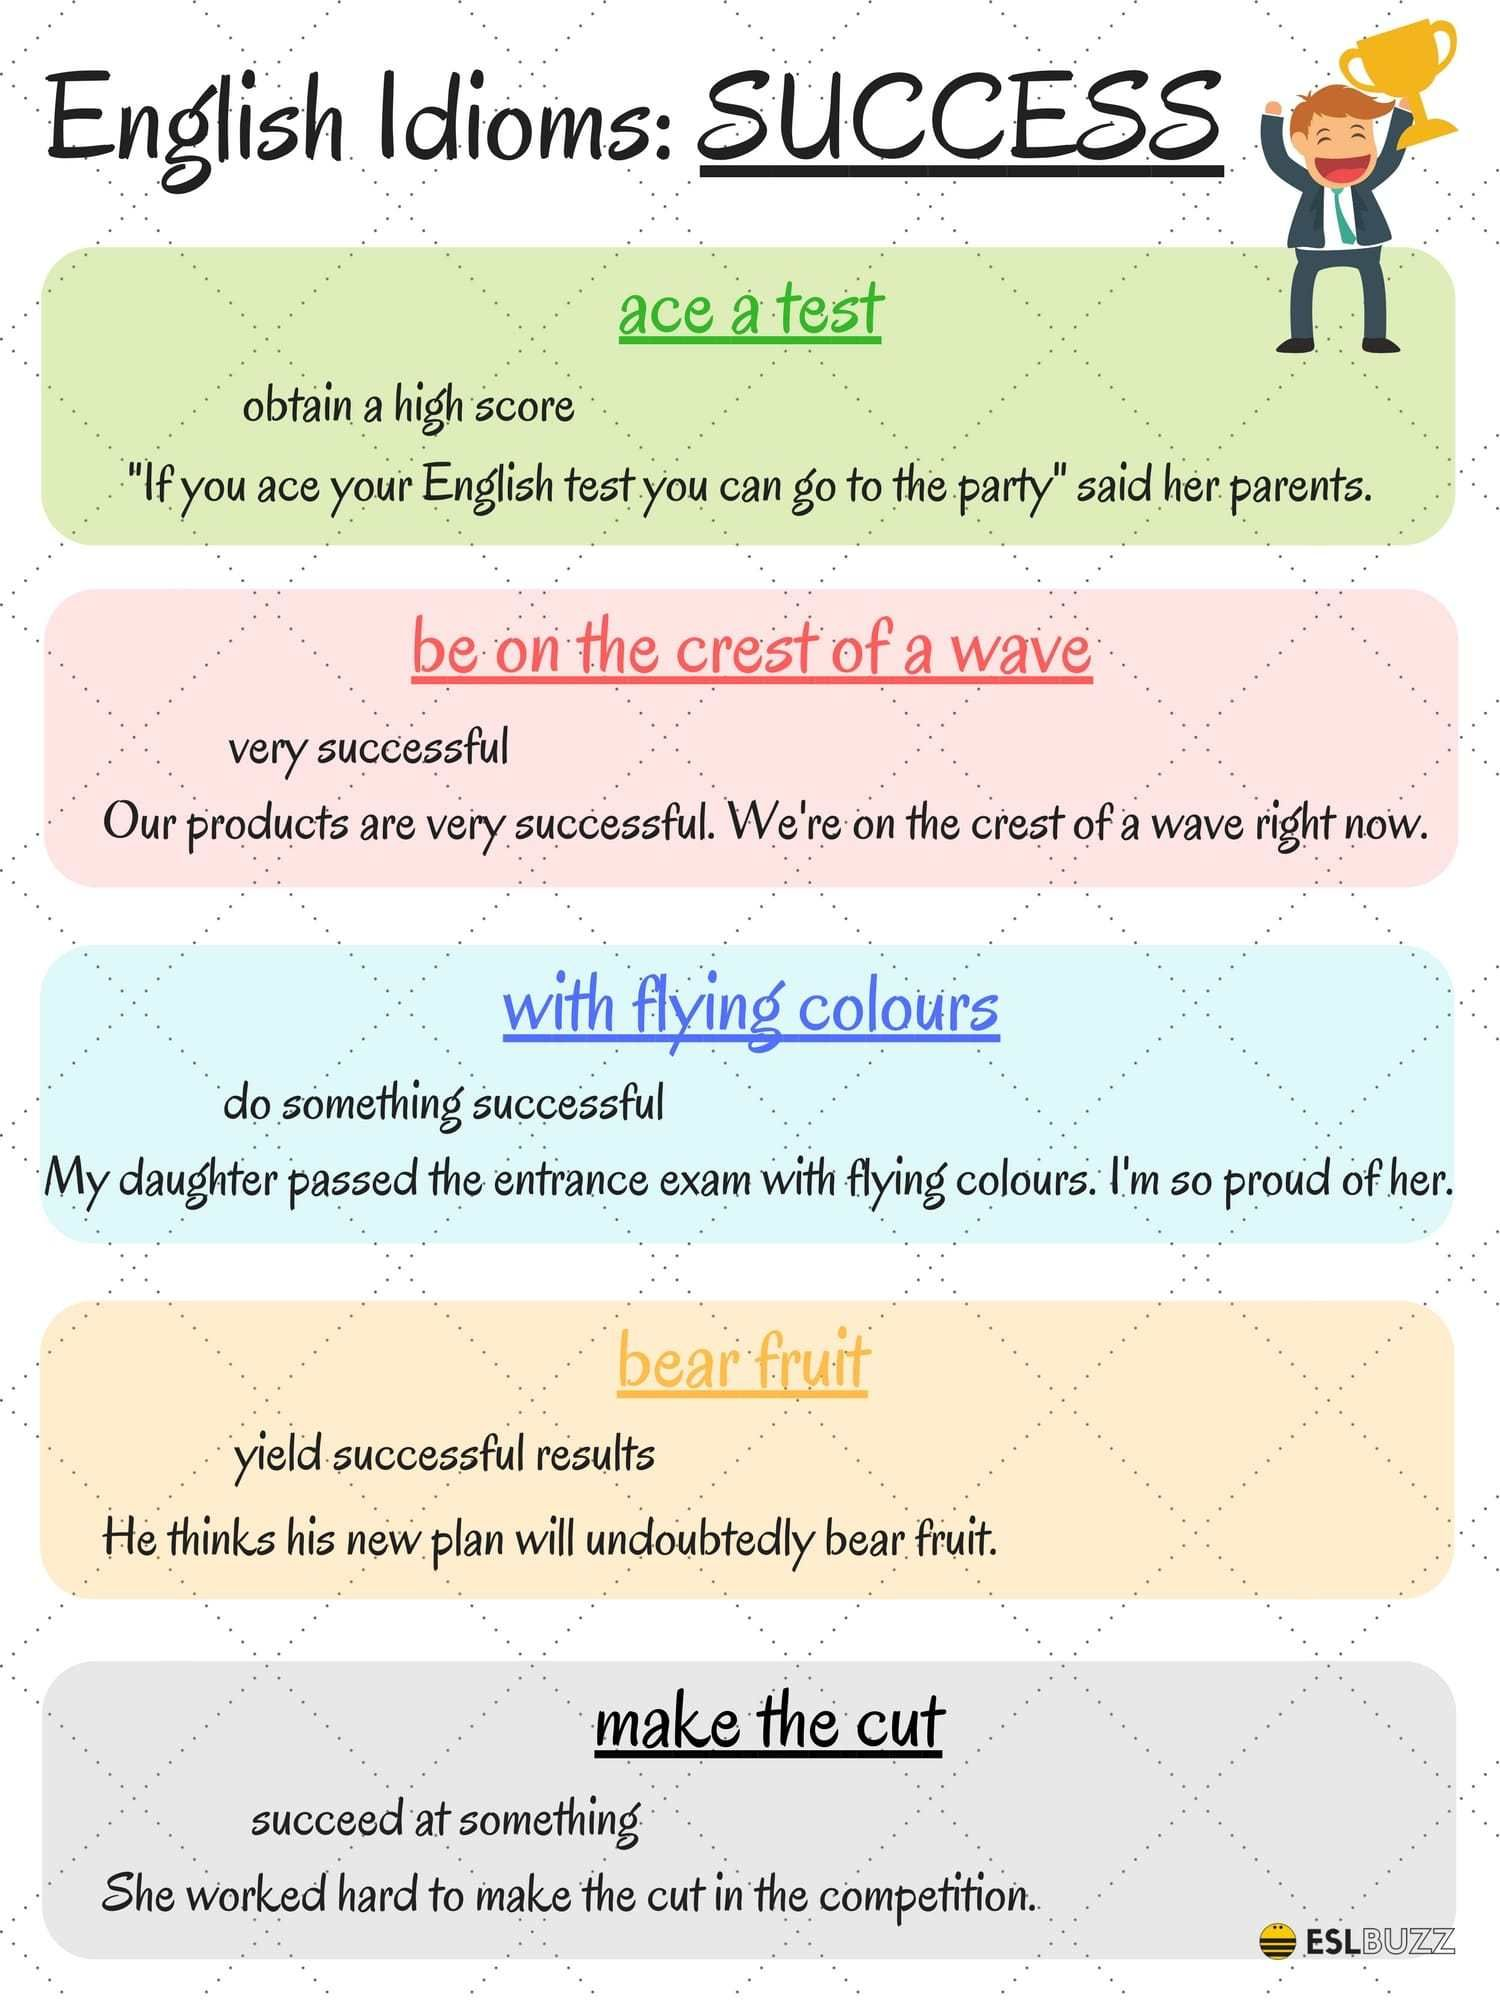 English Idioms: Success